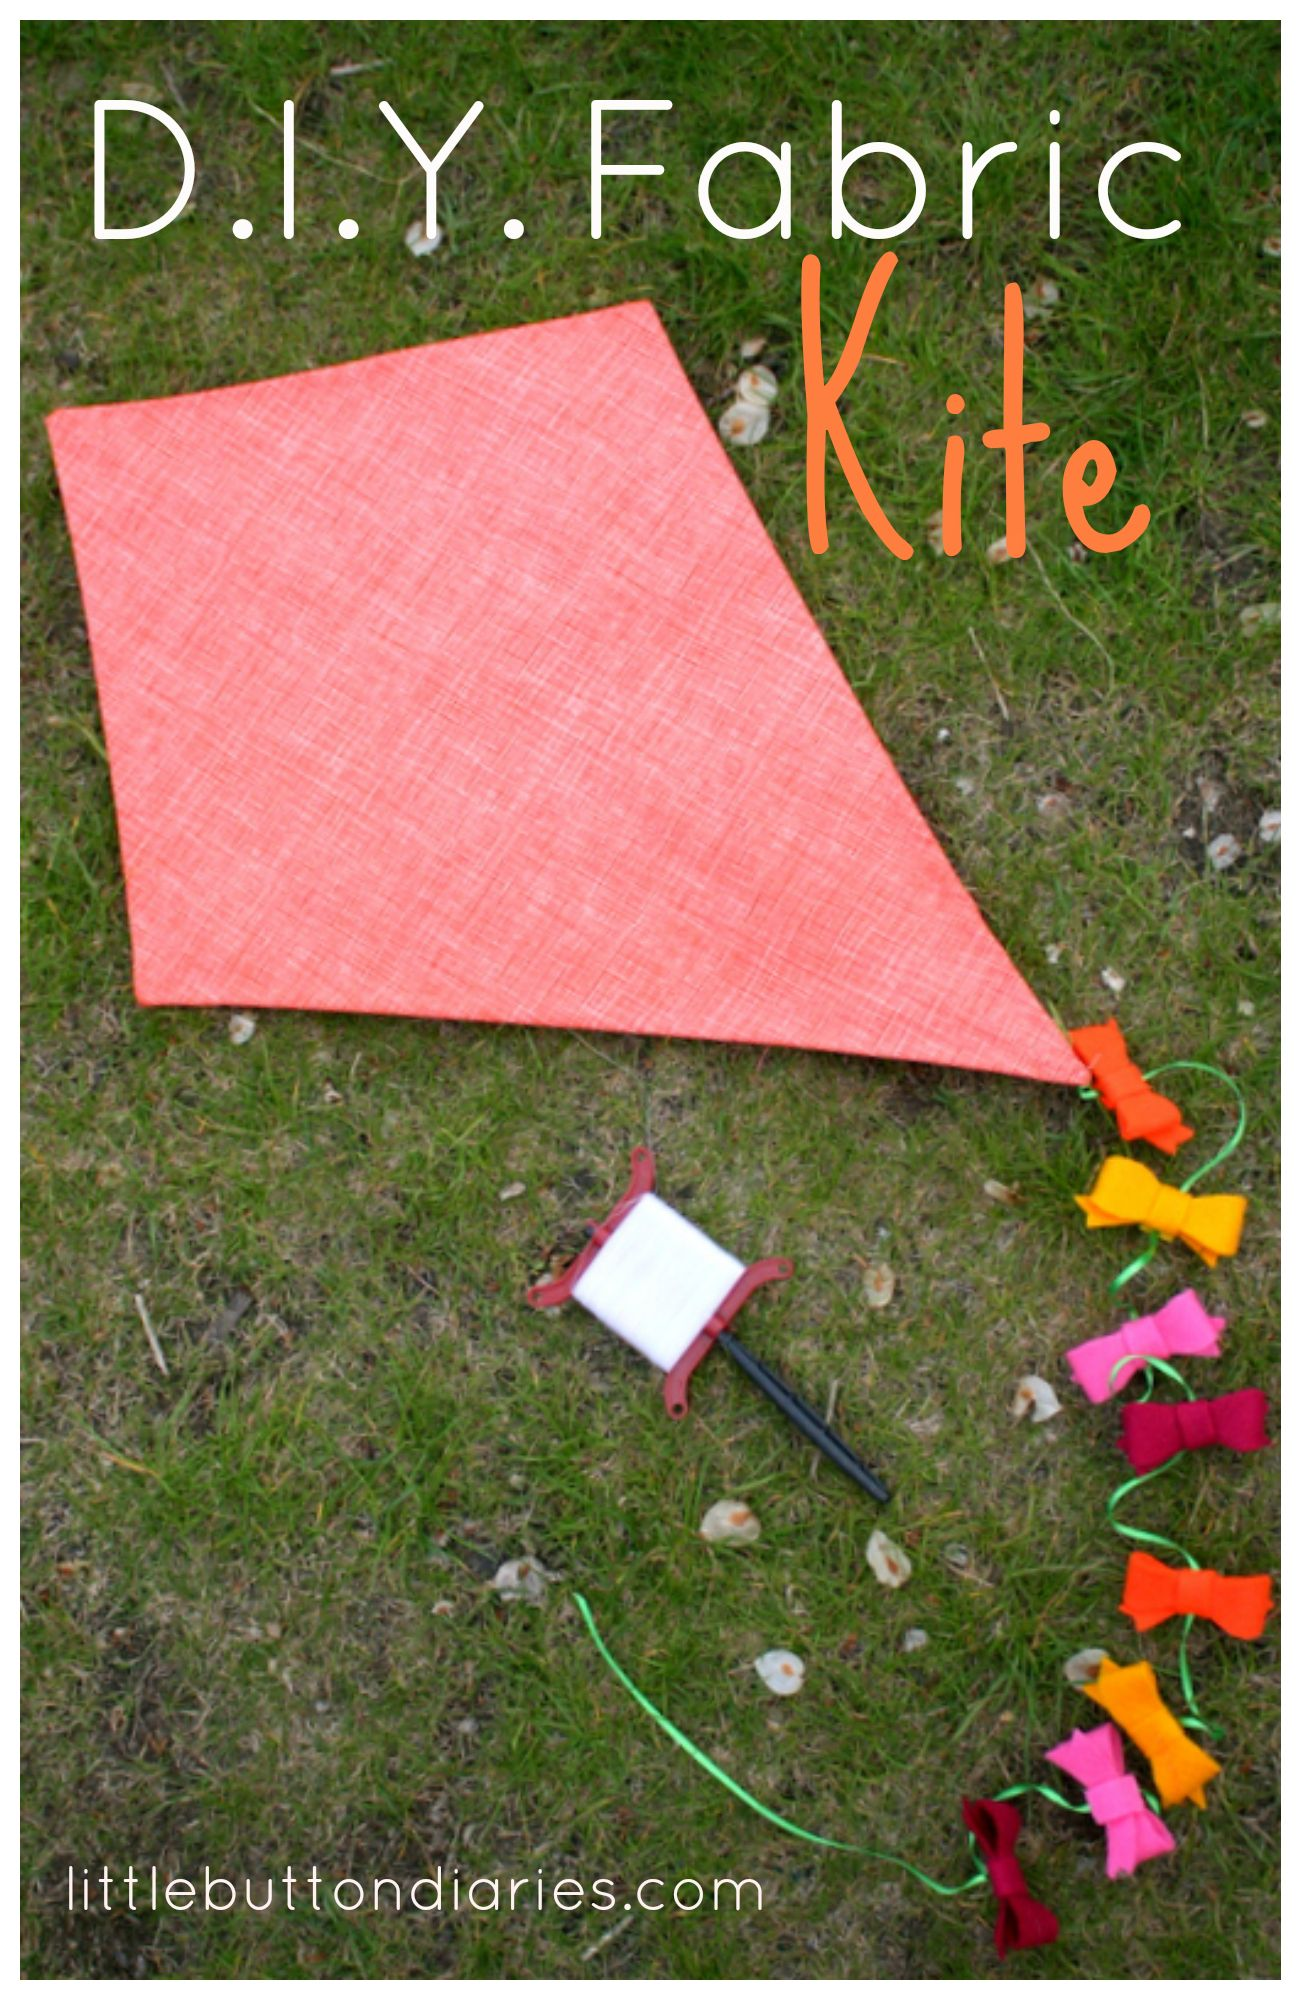 Nap Time Crafts Fabric Kite For Kids